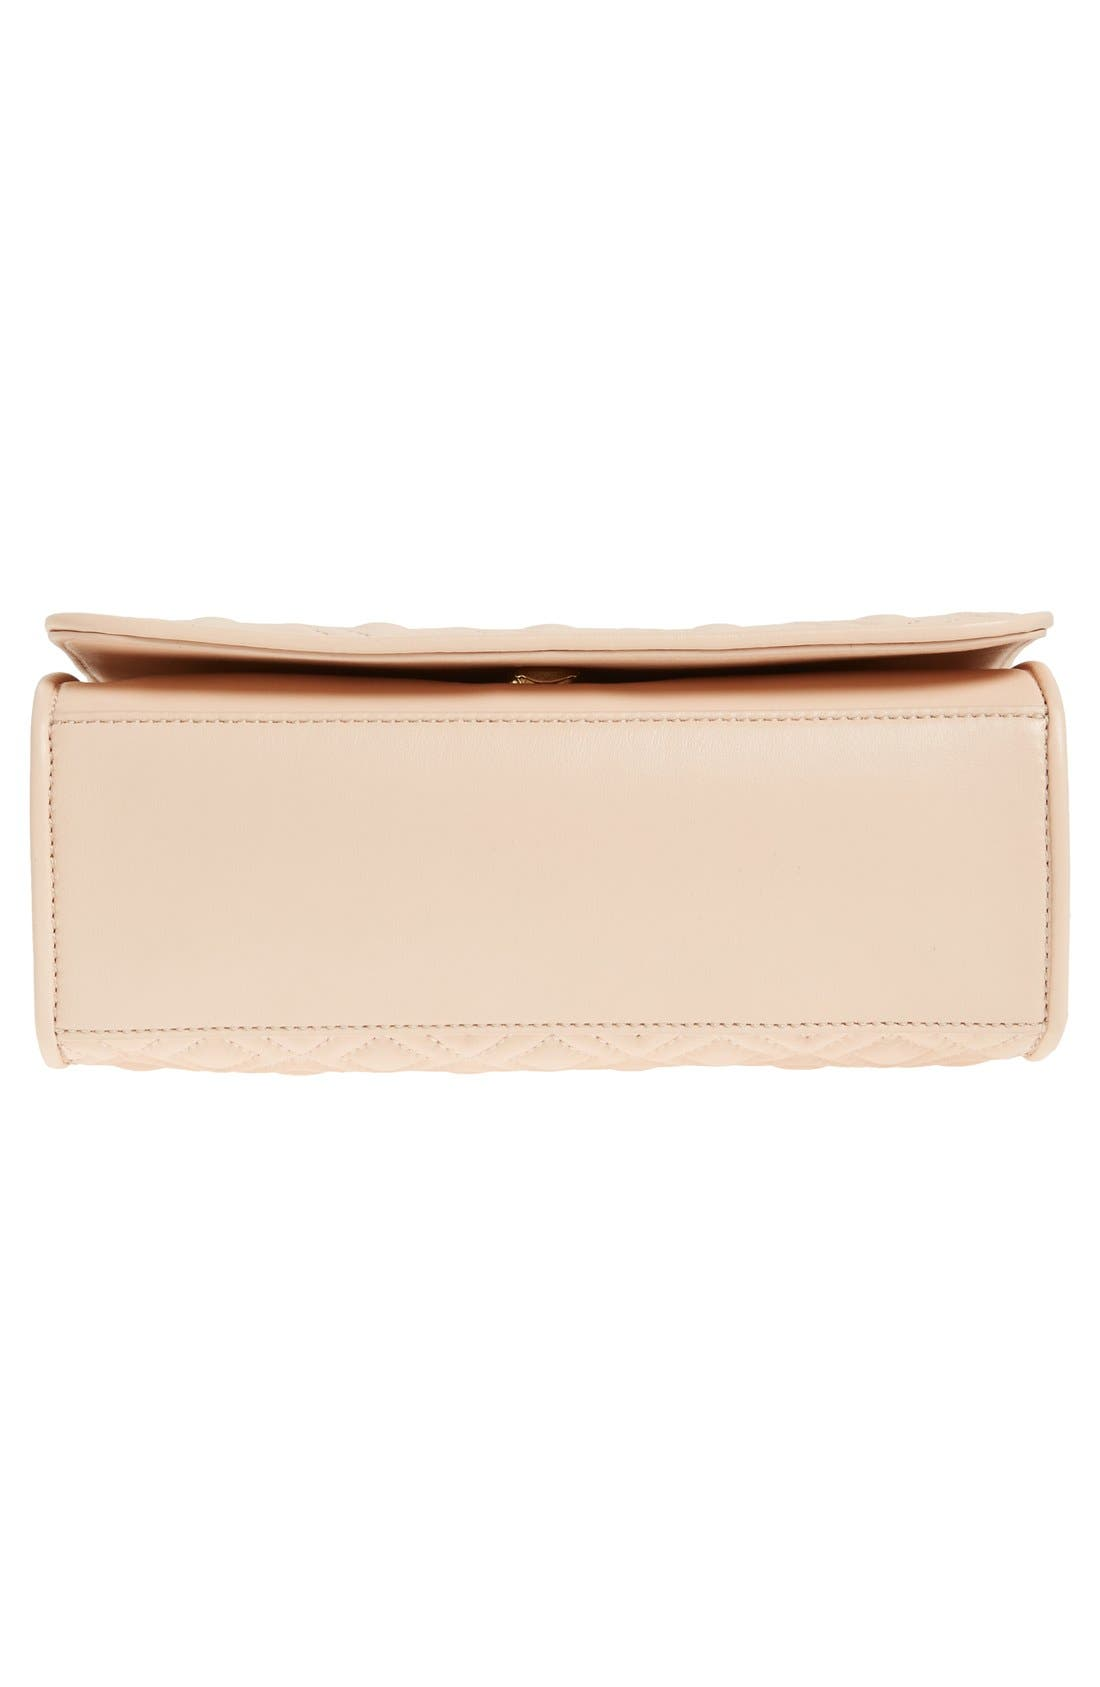 'Medium Fleming' Leather Shoulder Bag,                             Alternate thumbnail 8, color,                             Pale Apricot